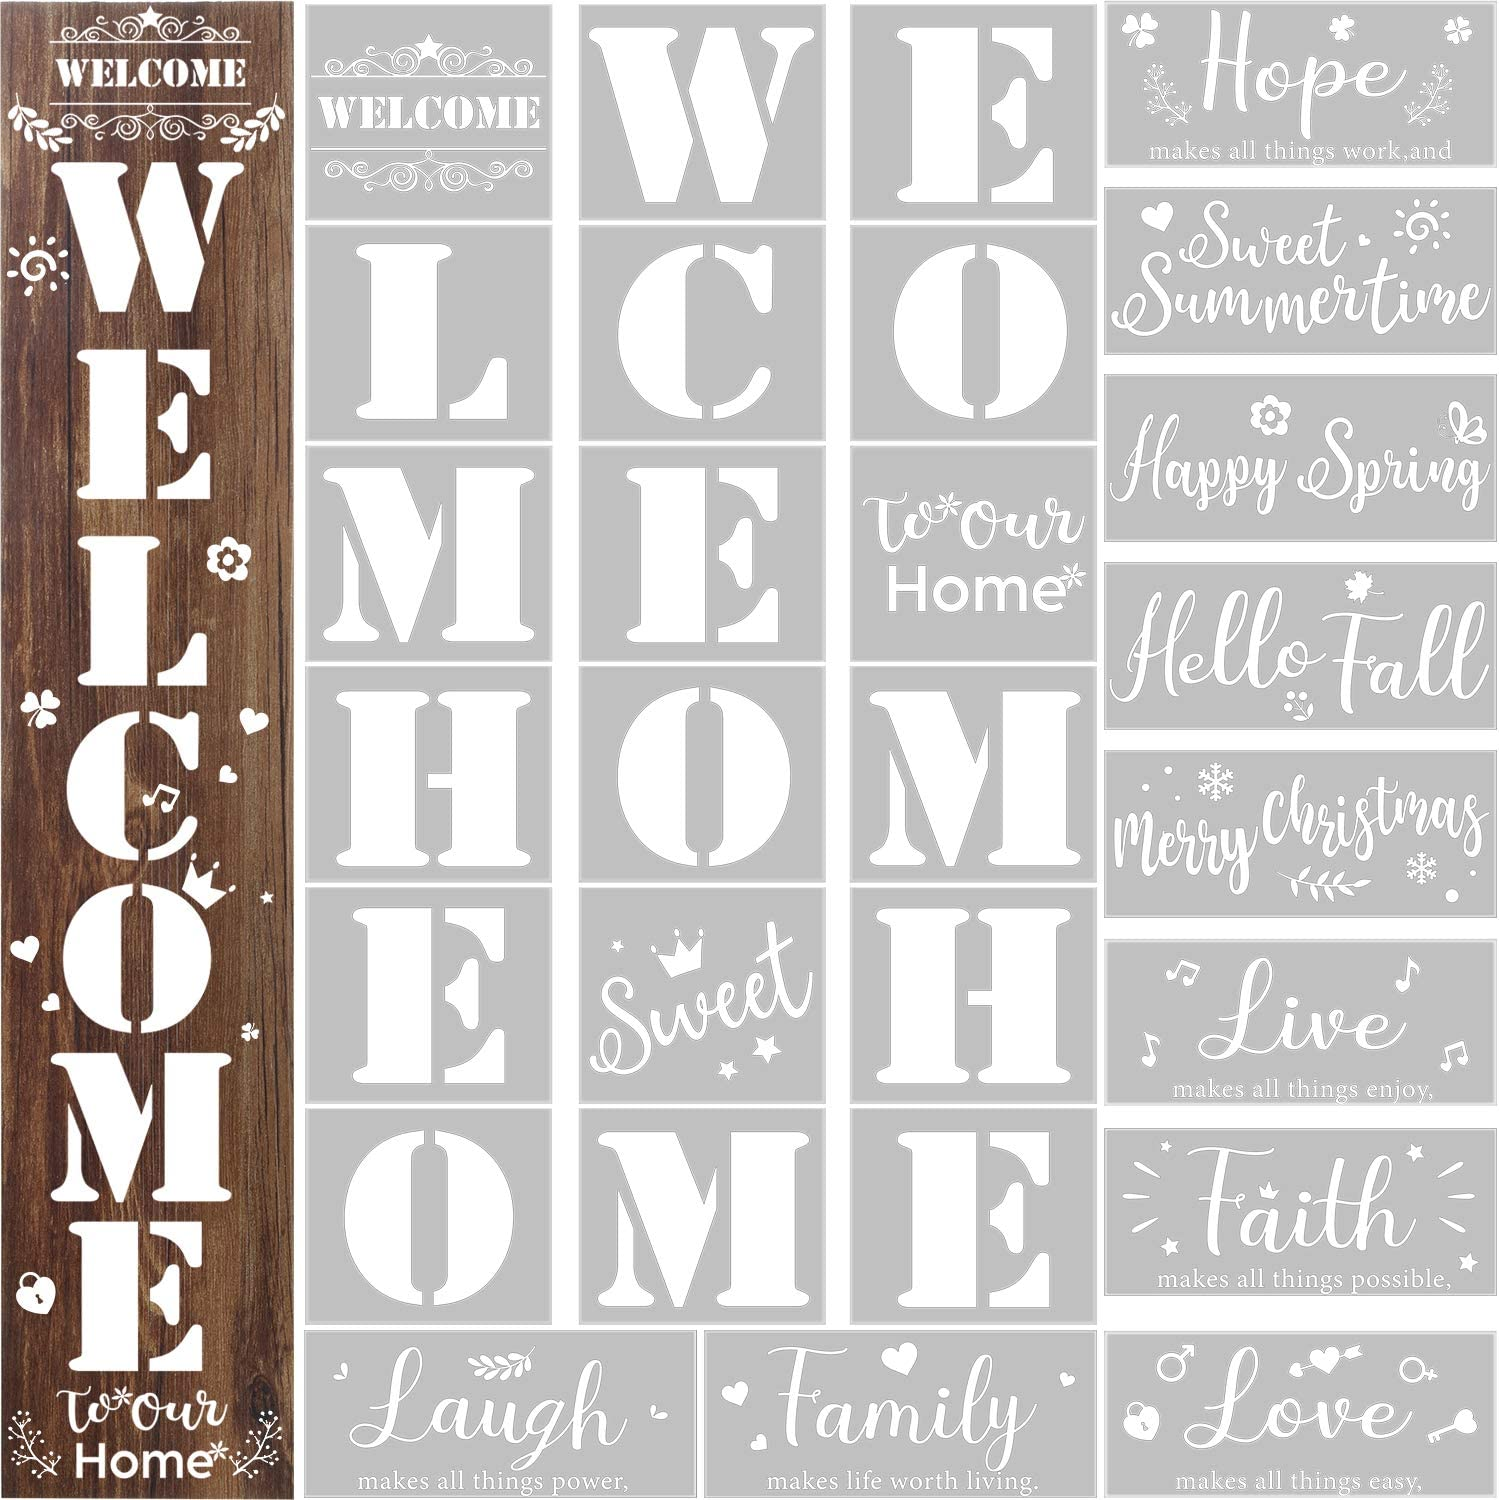 28 Pieces Reusable Large Stencils Templates Painting on Wood Stencils Vertical Welcome Stencil Plastic Symbolic Stencils Seasonal Word Sign Templates for Front Door, Rustic Home Porch DIY Decor